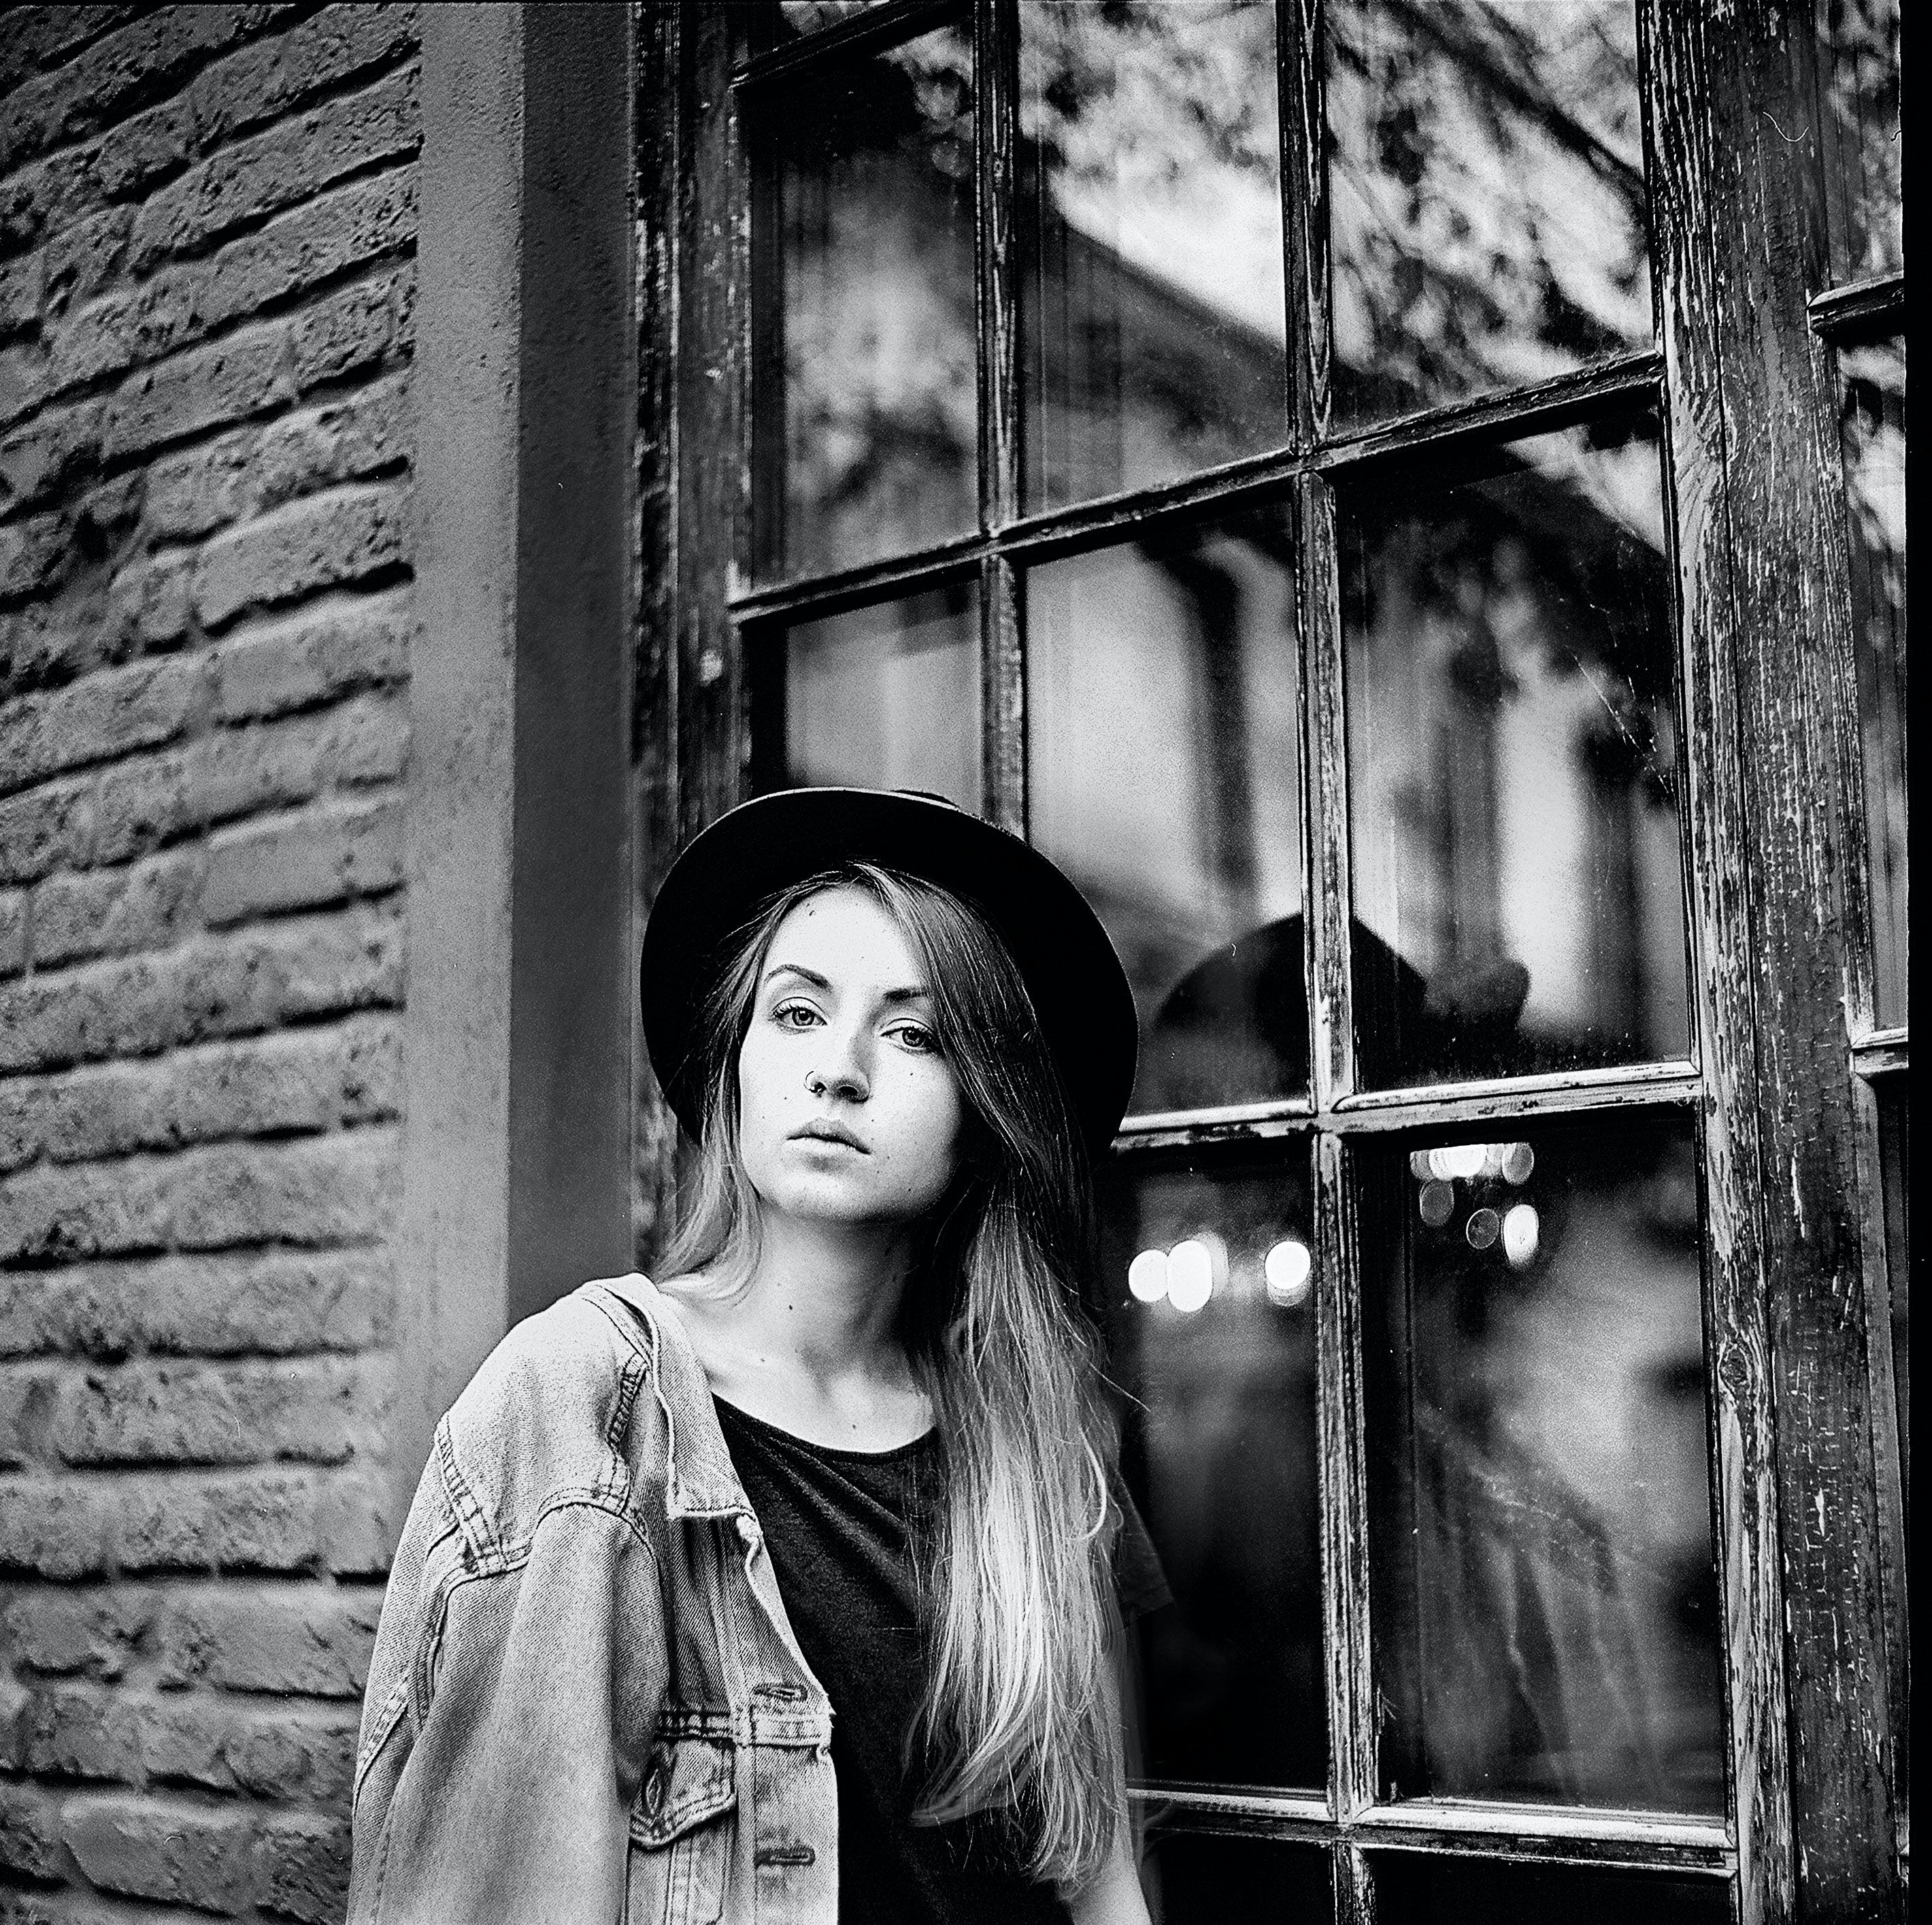 Grayscale Photo of Women's Denim Jacket and Hat Leaning on Window